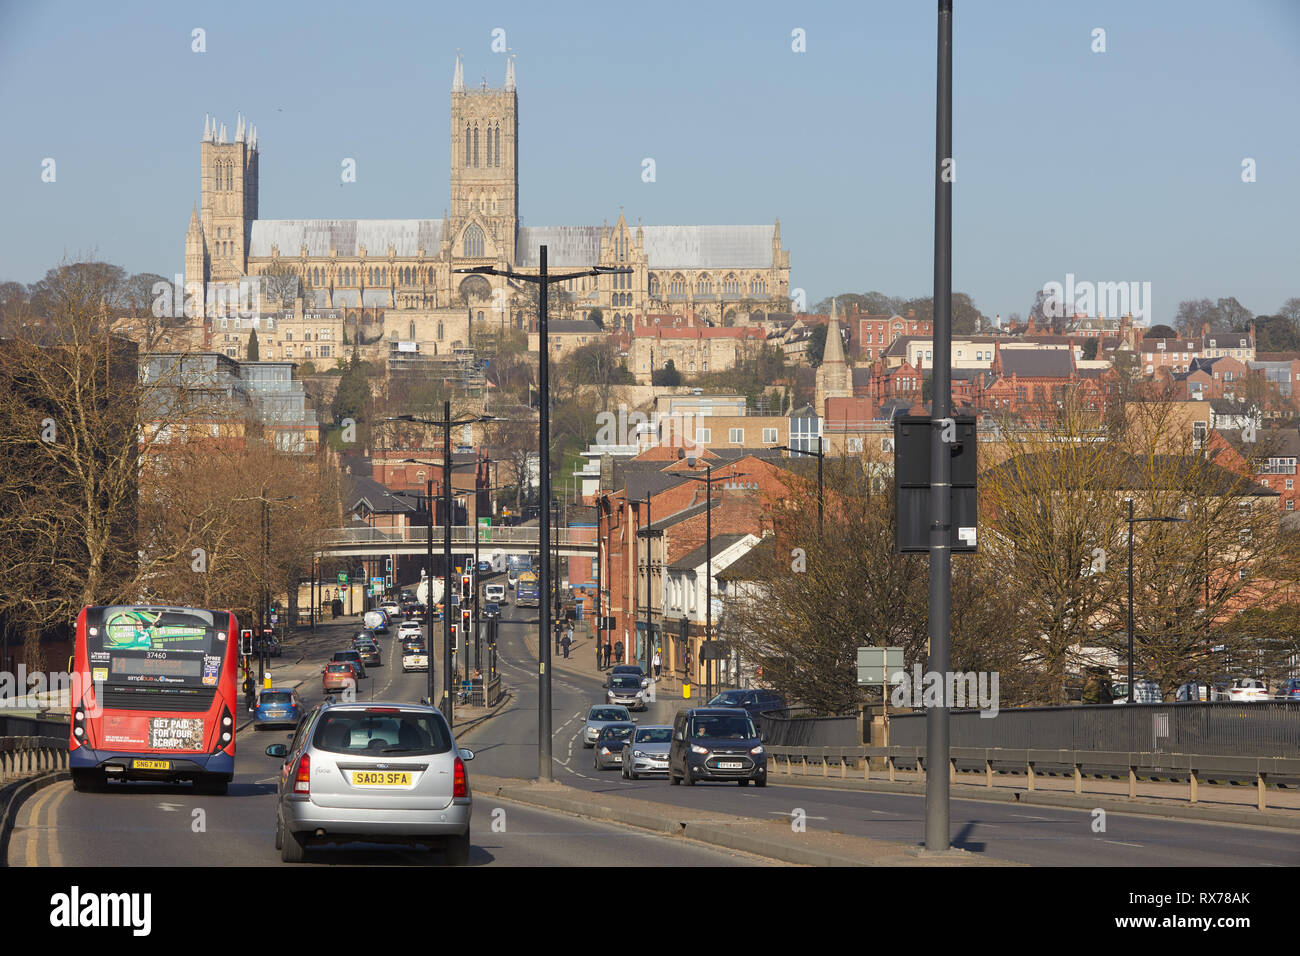 Lincoln Cathedral from Pelham Bridge showing traffic congestion - Stock Image